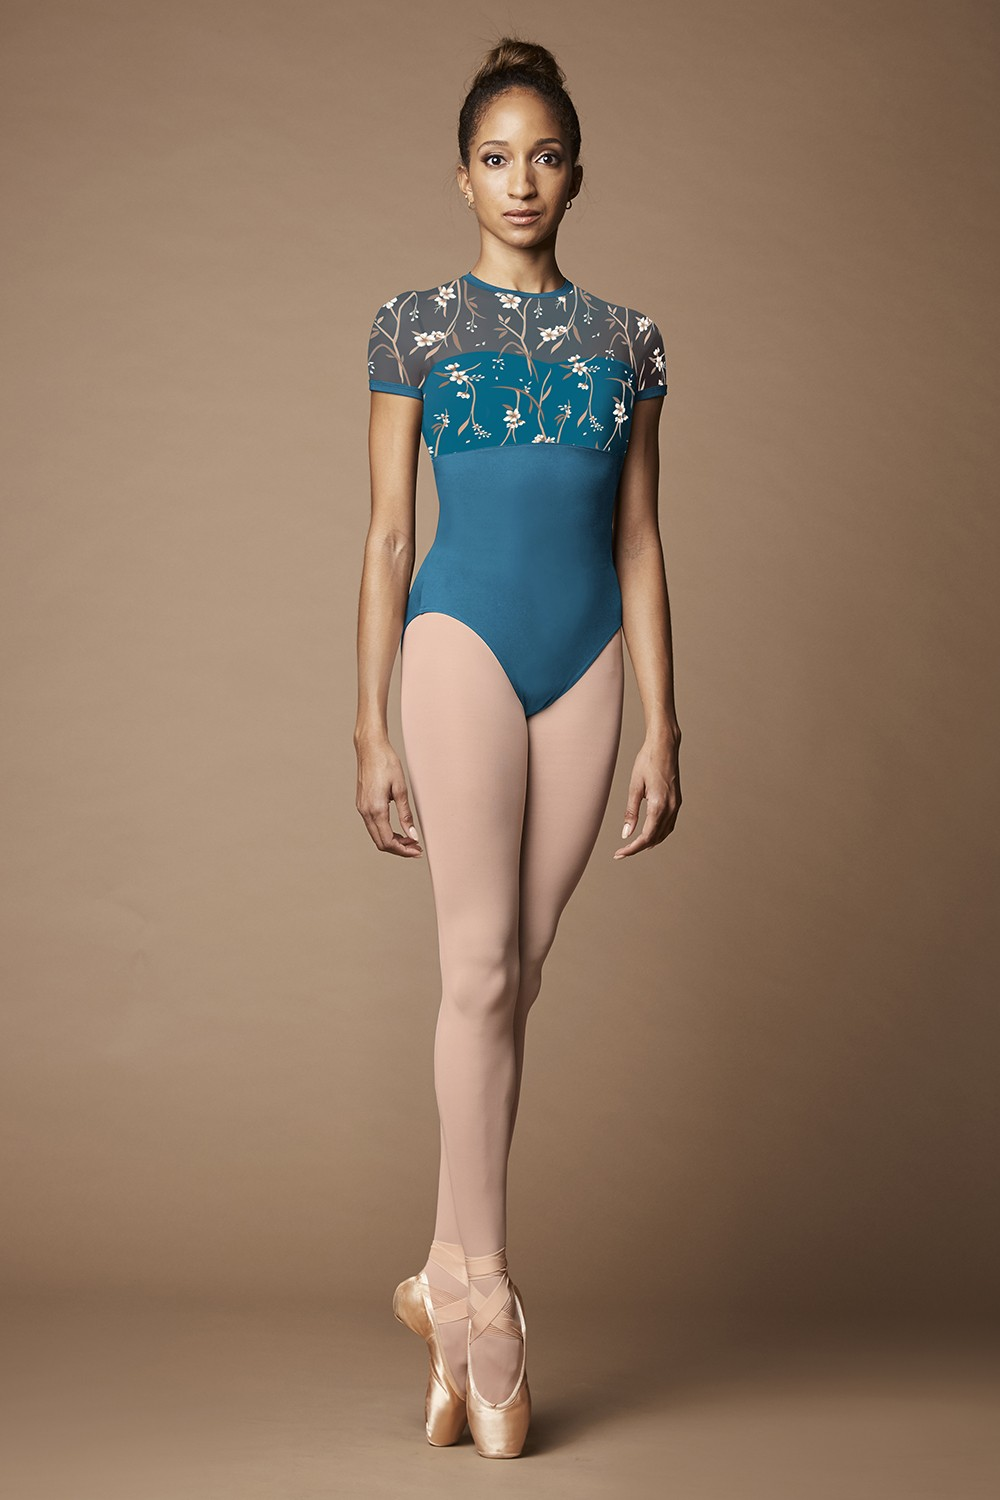 Wild Bloom Cap Sleeve Leotard Women's Dance Leotards